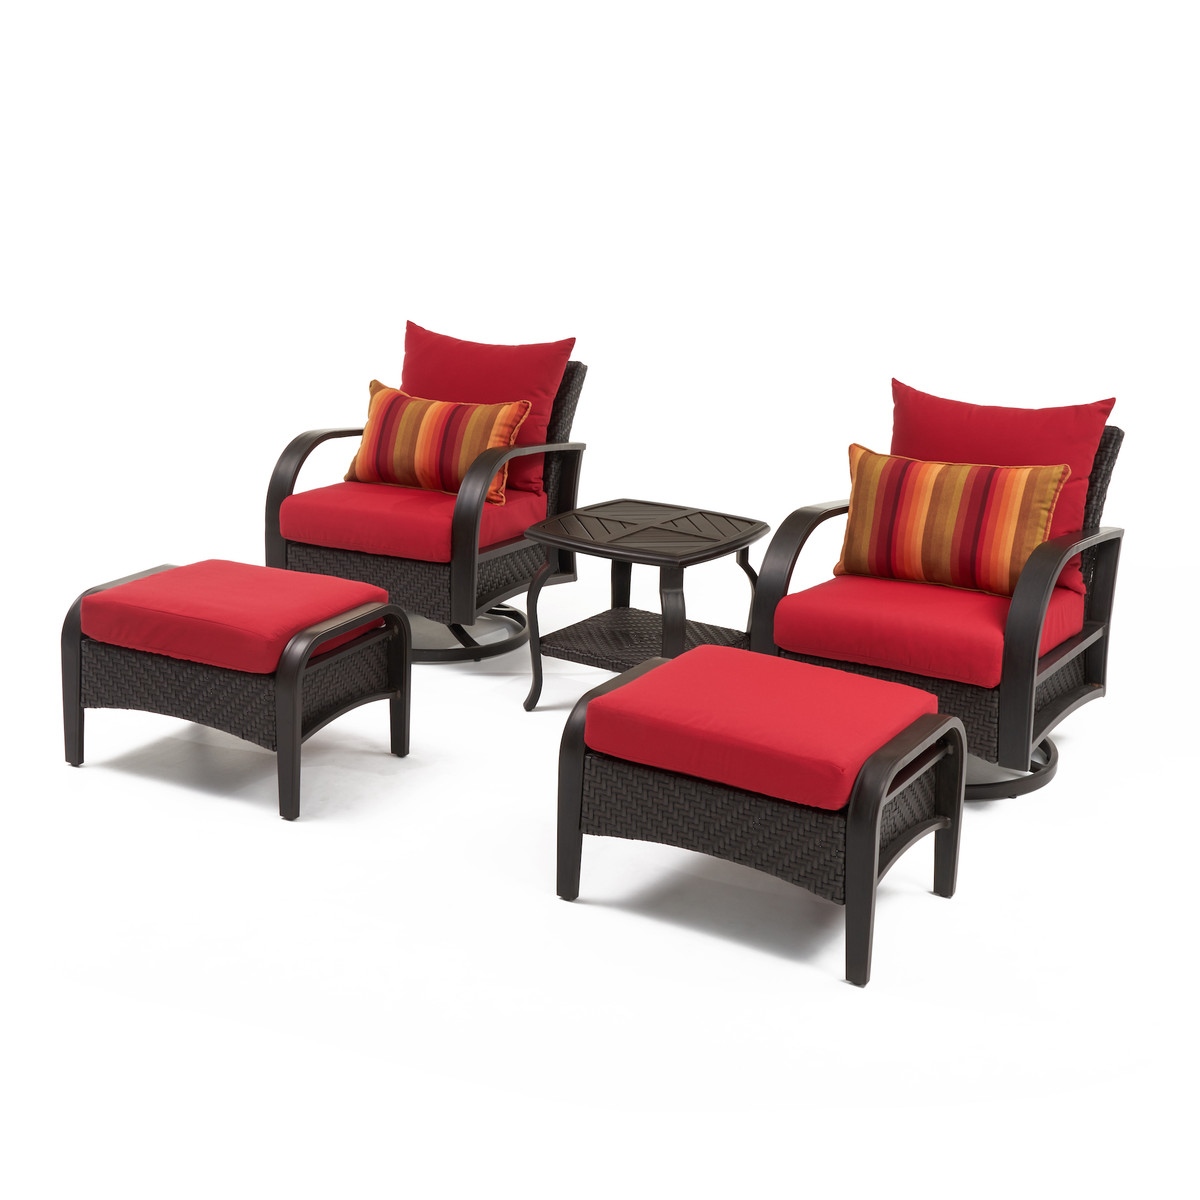 Barcelo™ 5 Piece Motion Club & Ottoman Set - Sunset Red